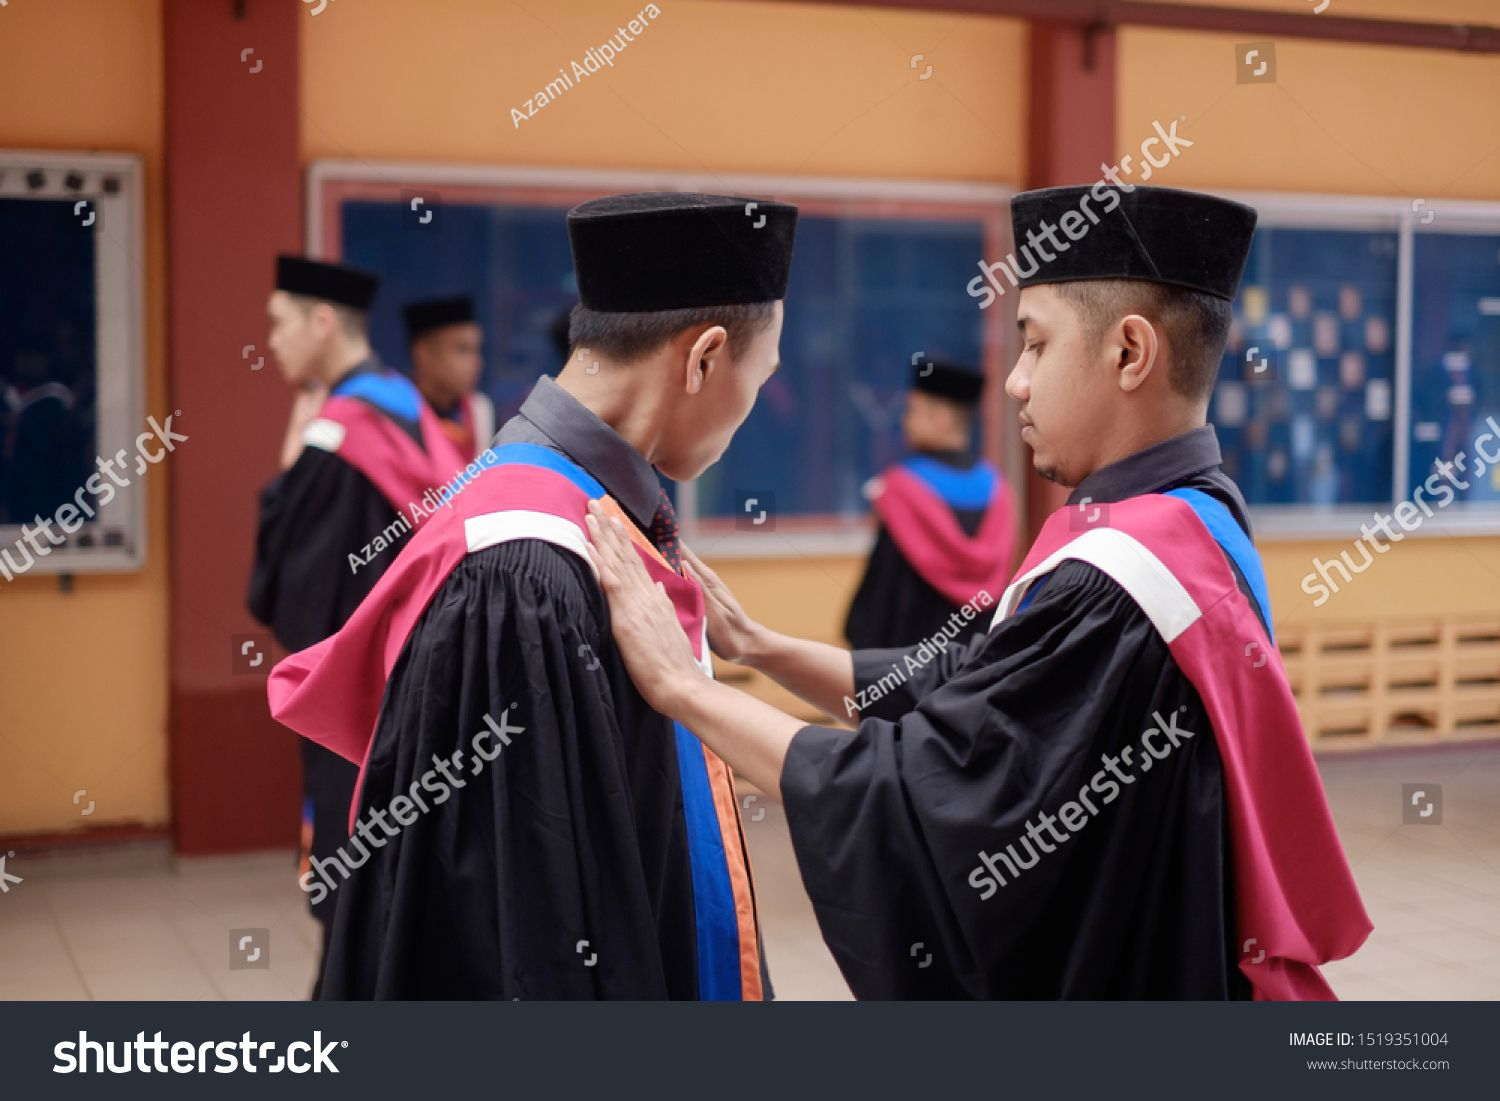 Muadzm Shah Malaysia August 28th 2019 Cheerful Faces During Convocation Ceremony Held By The College It Shown Ho In 2020 Photo Editing Study Hard Stock Photos